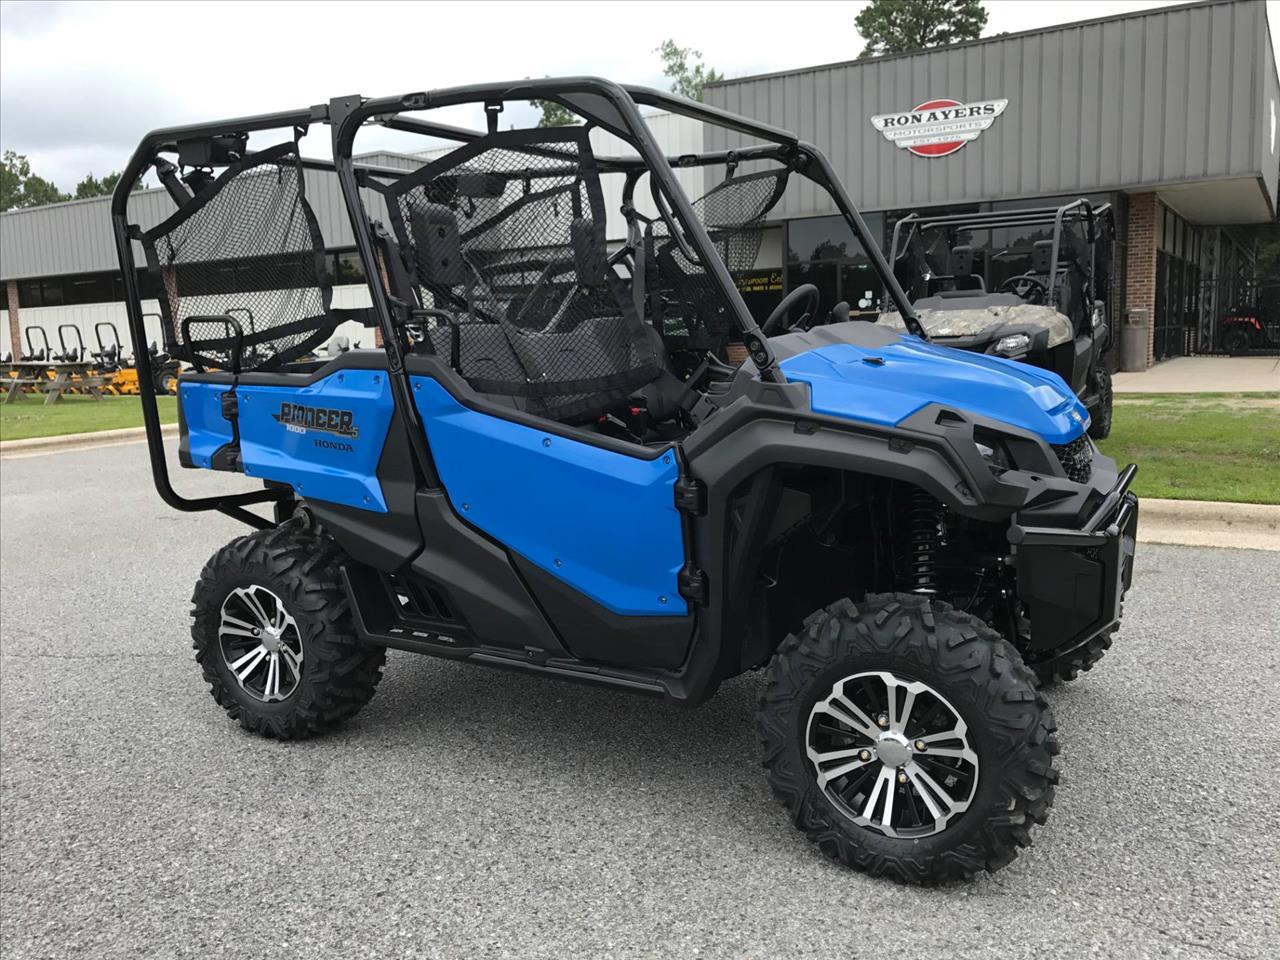 2017 Honda Pioneer 1000-5 Deluxe for sale at Vehicle Network, LLC - Ron Ayers Motorsports in Greenville NC